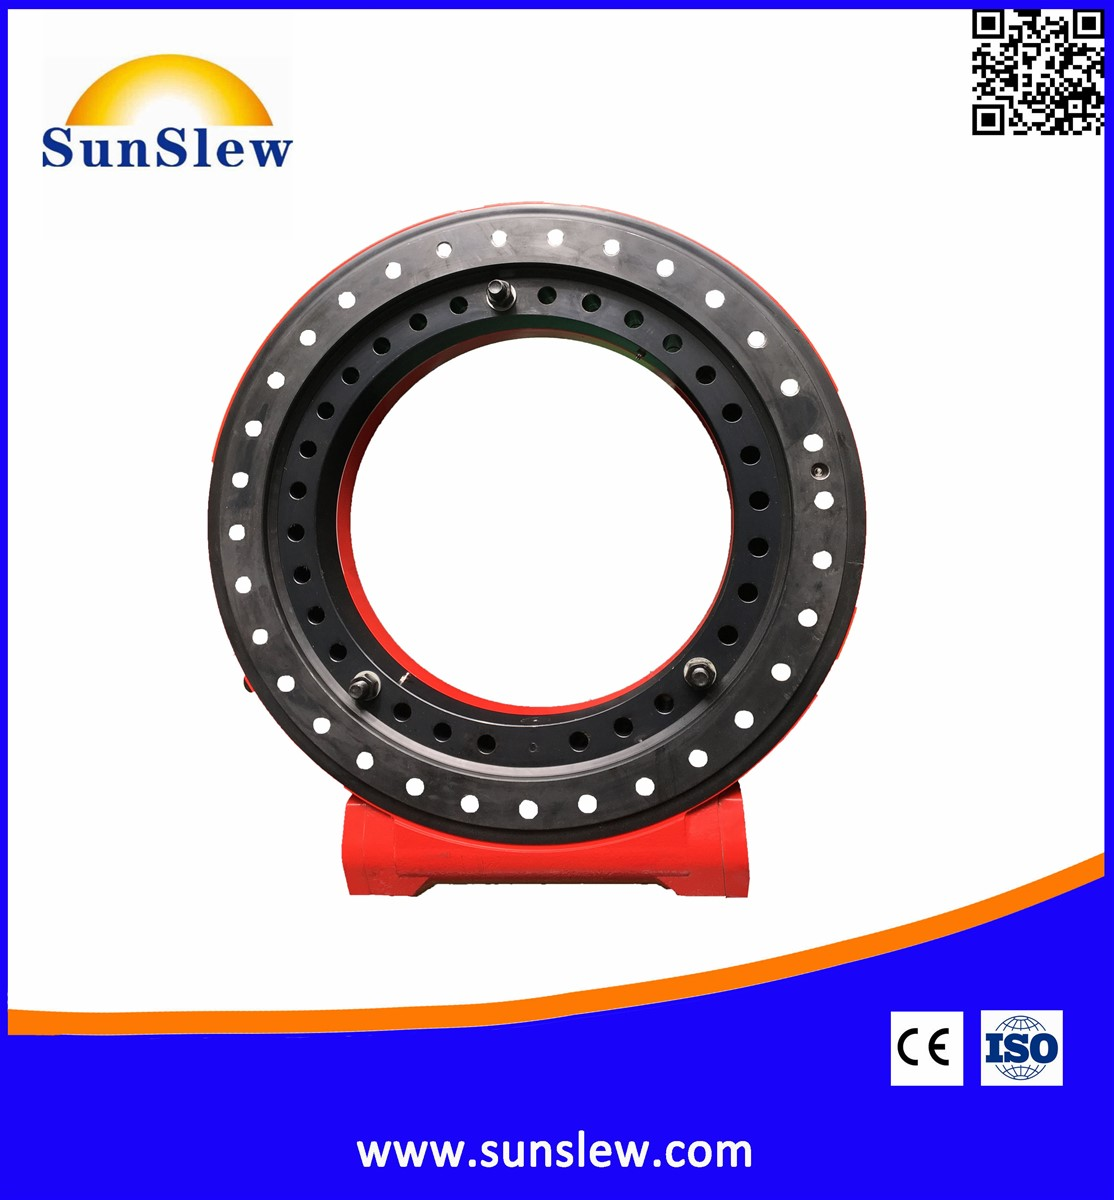 SD25 Slewing bearing ring drive for aerial platform and crane